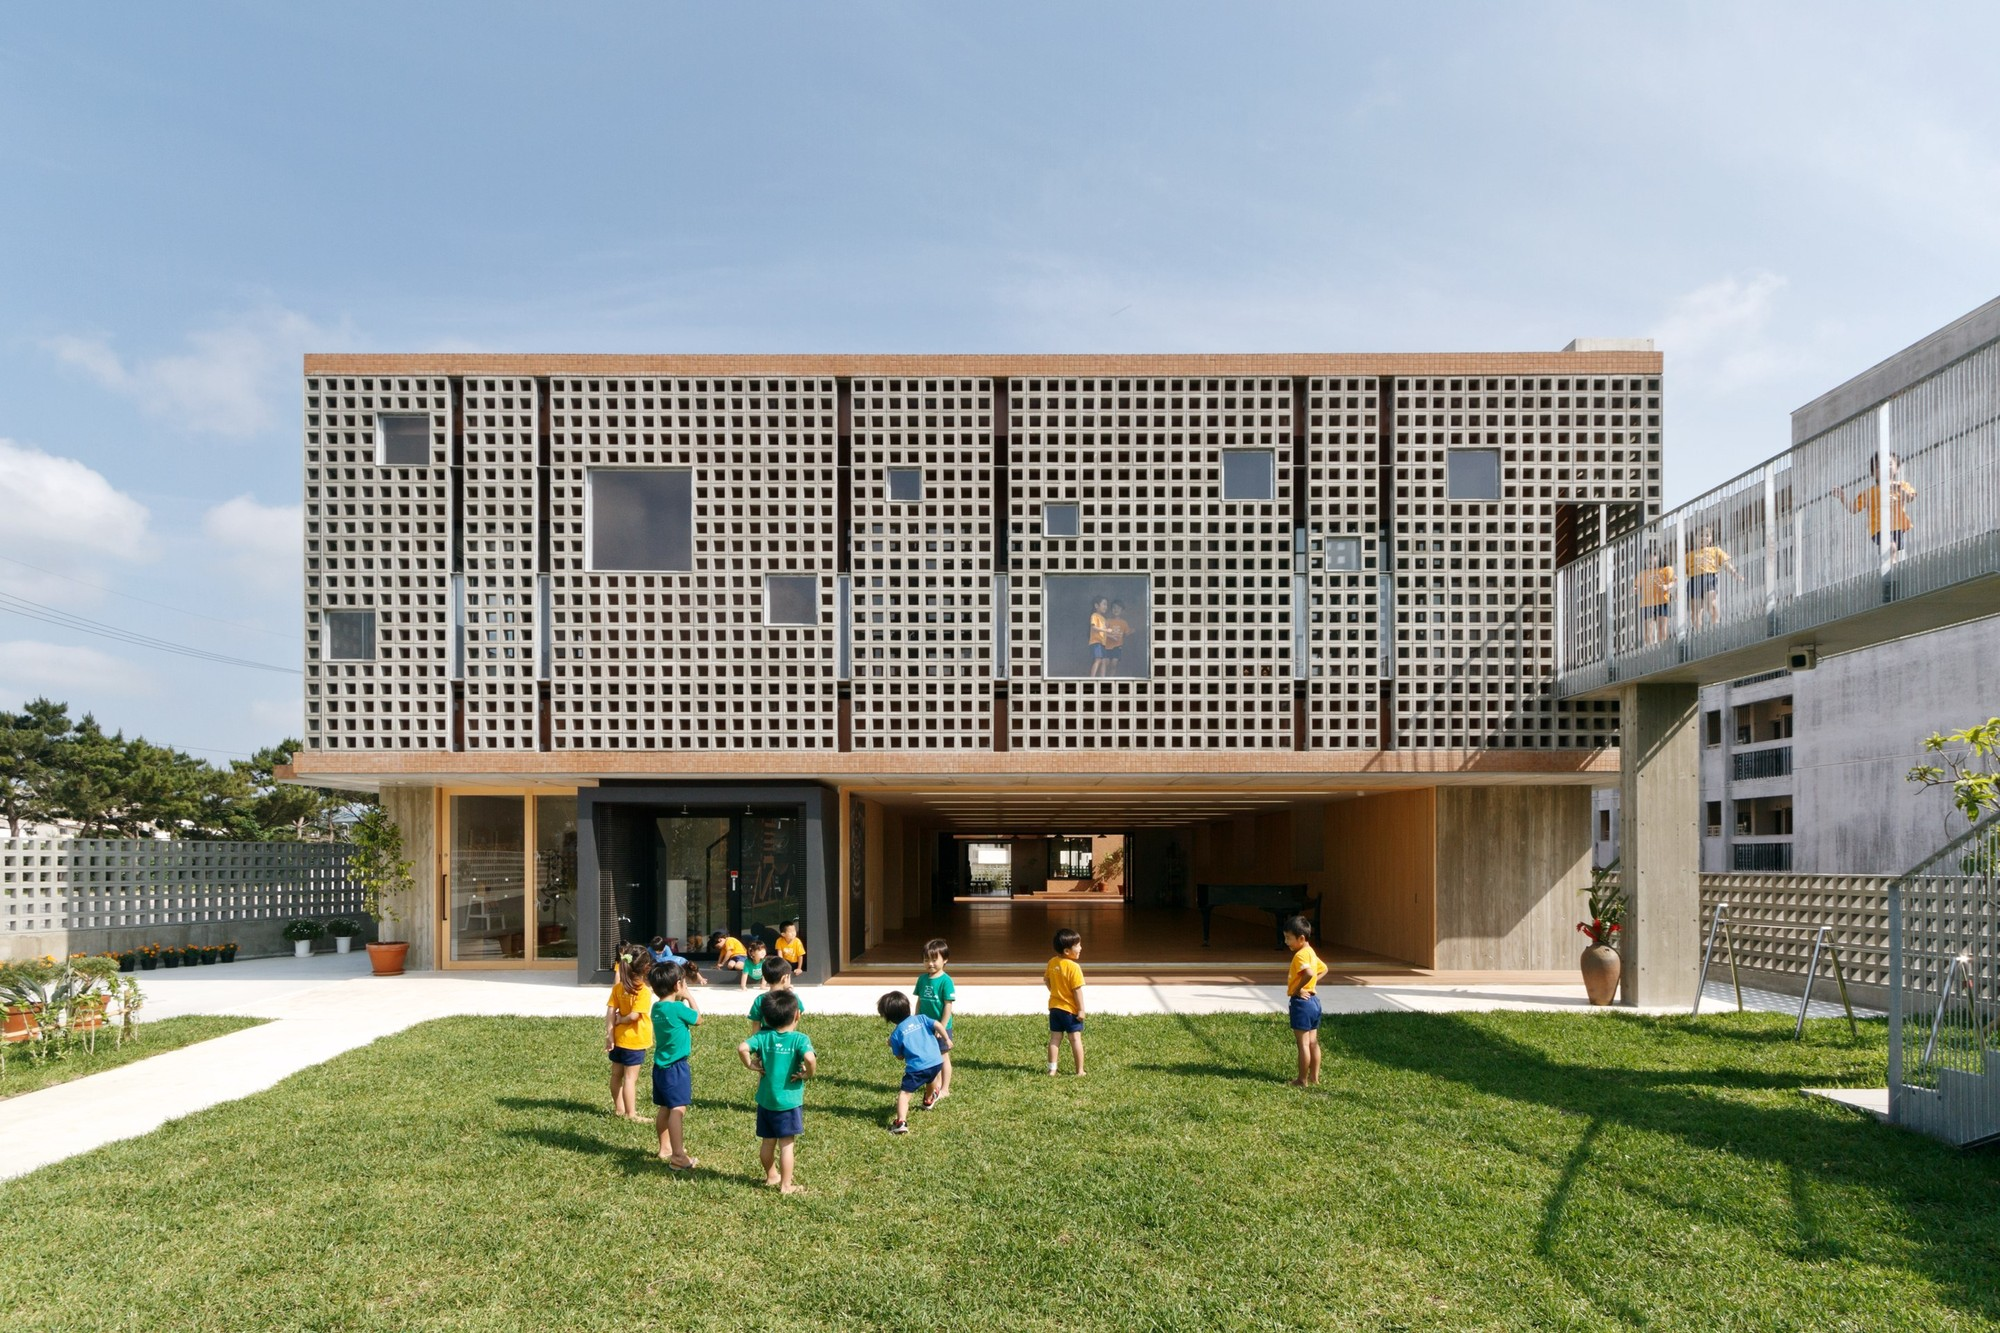 Hanazono Kindergarten and Nursery / HIBINOSEKKEI + Youji no Shiro, © Studio Bauhaus